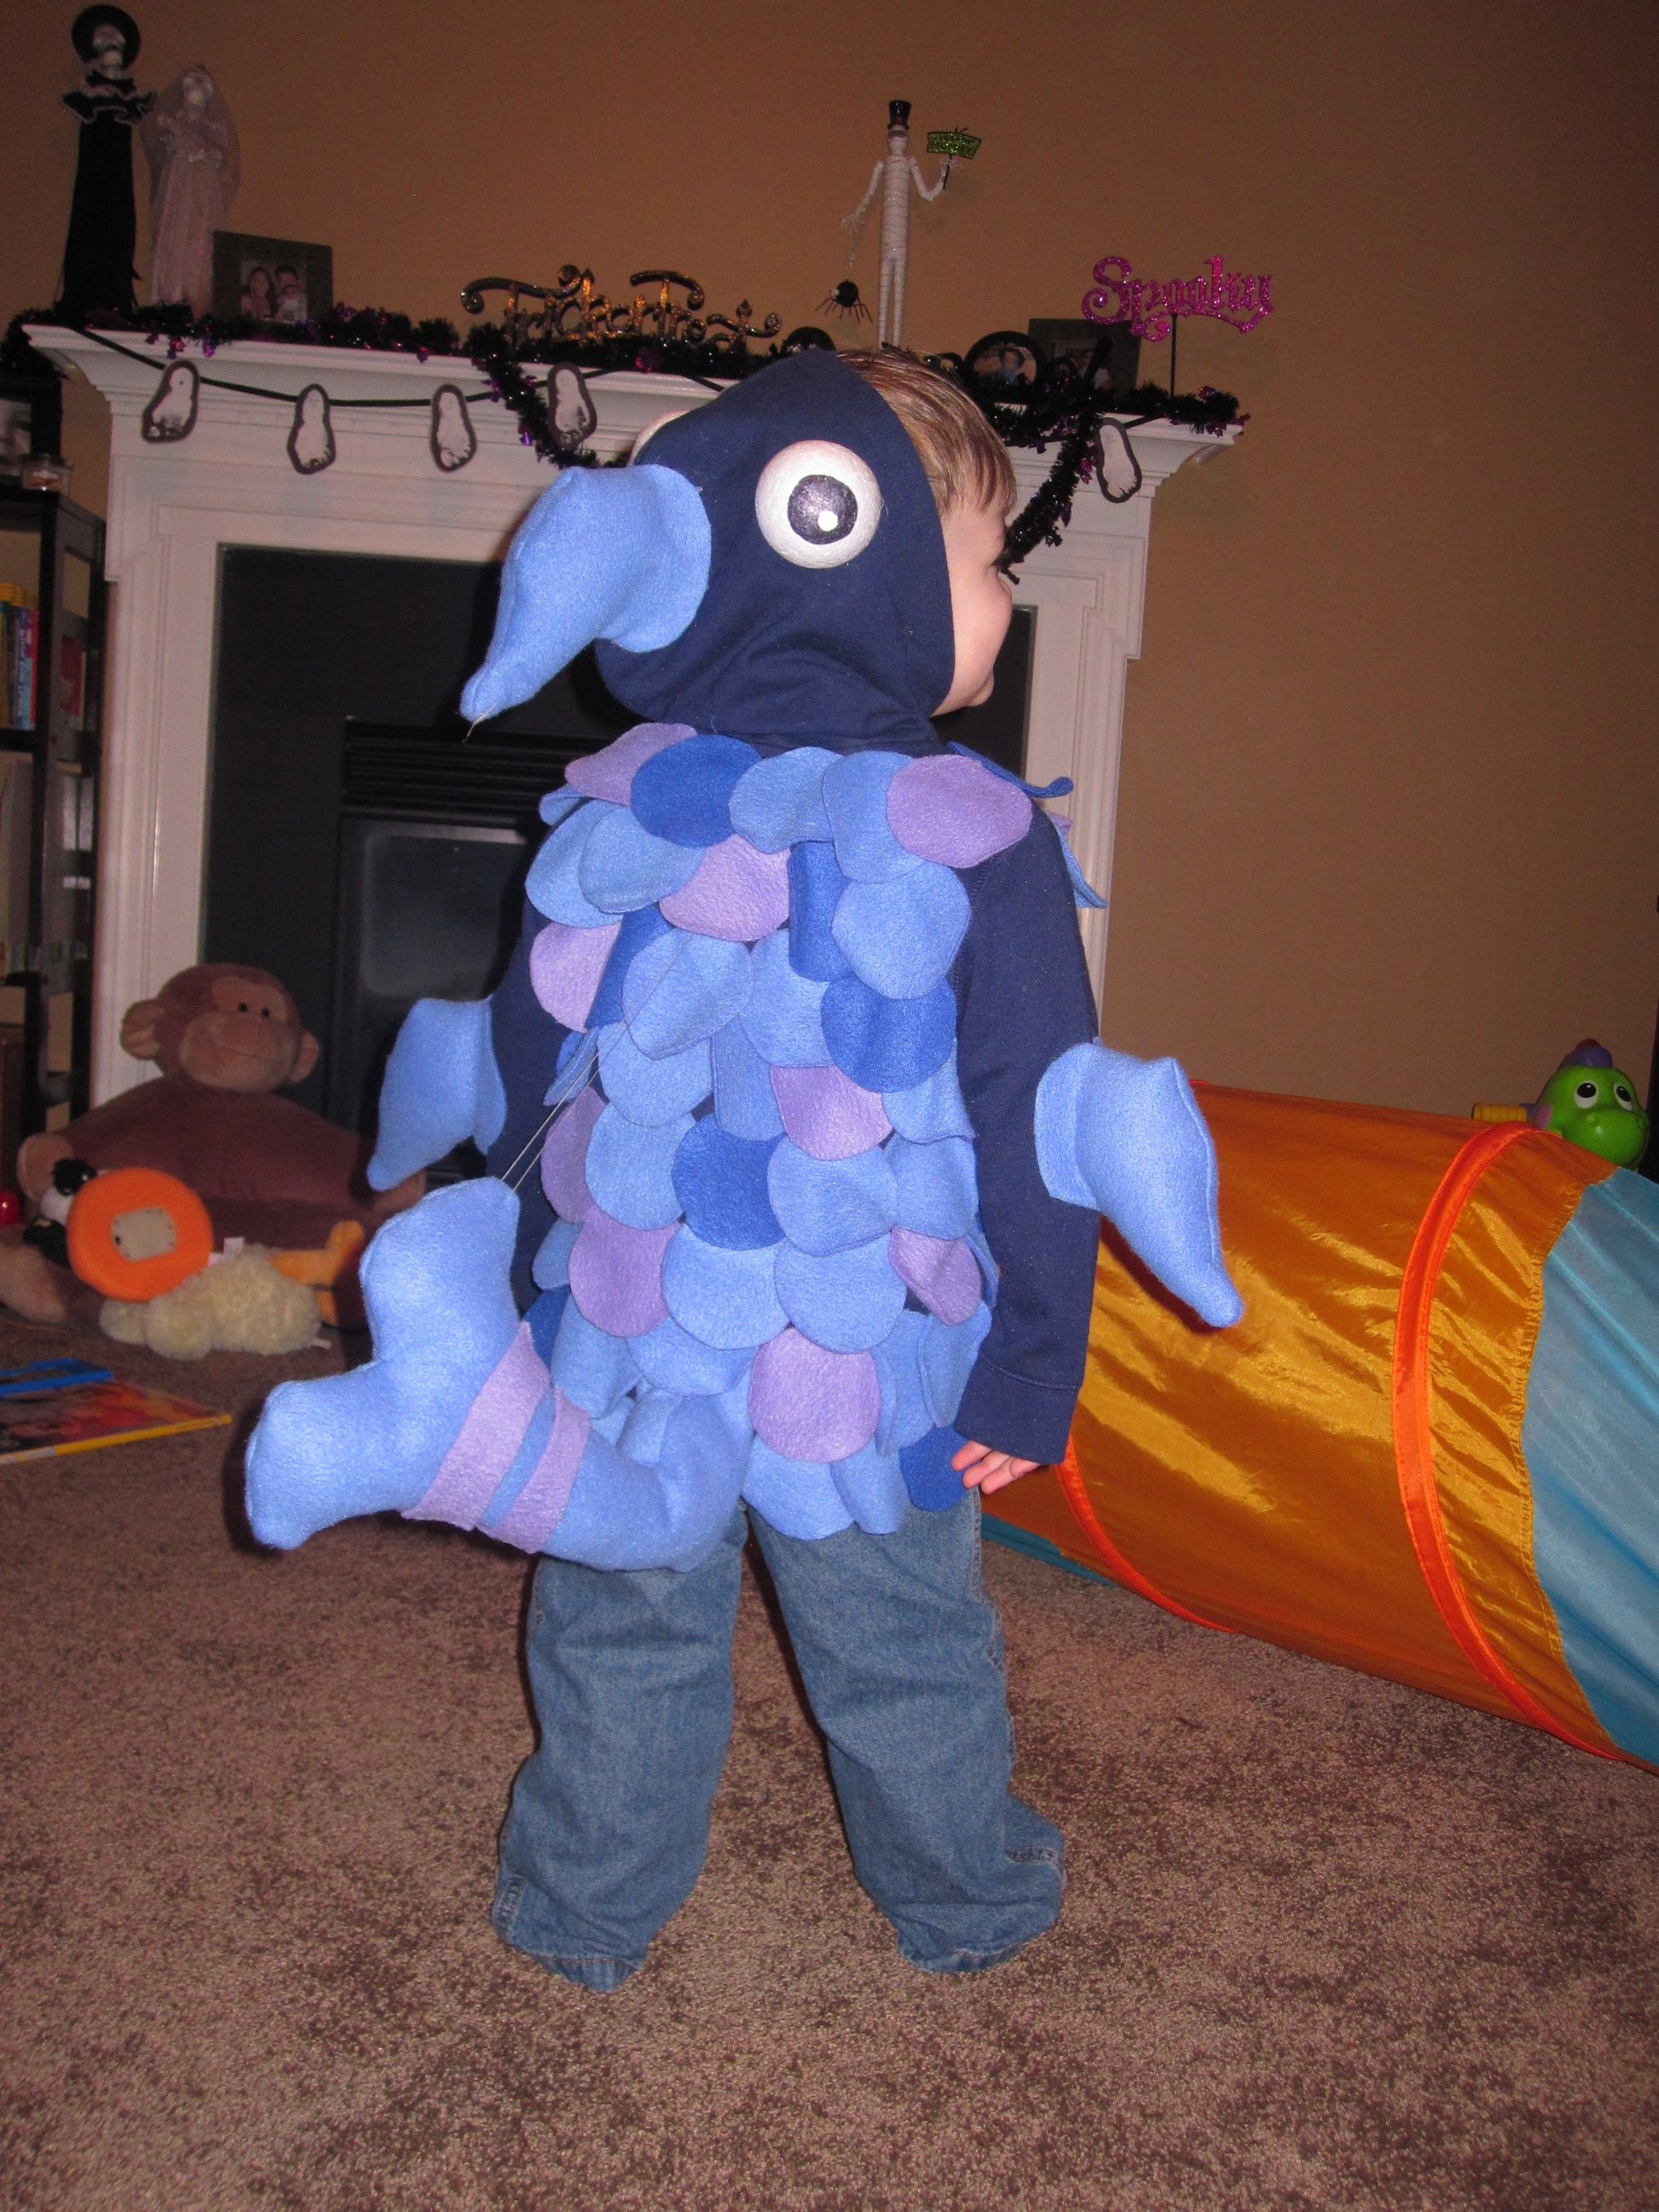 Pout Pout Fish costume. Very easy to make! & Pout Pout Fish costume. Very easy to make! | Holiday Fun | Pinterest ...